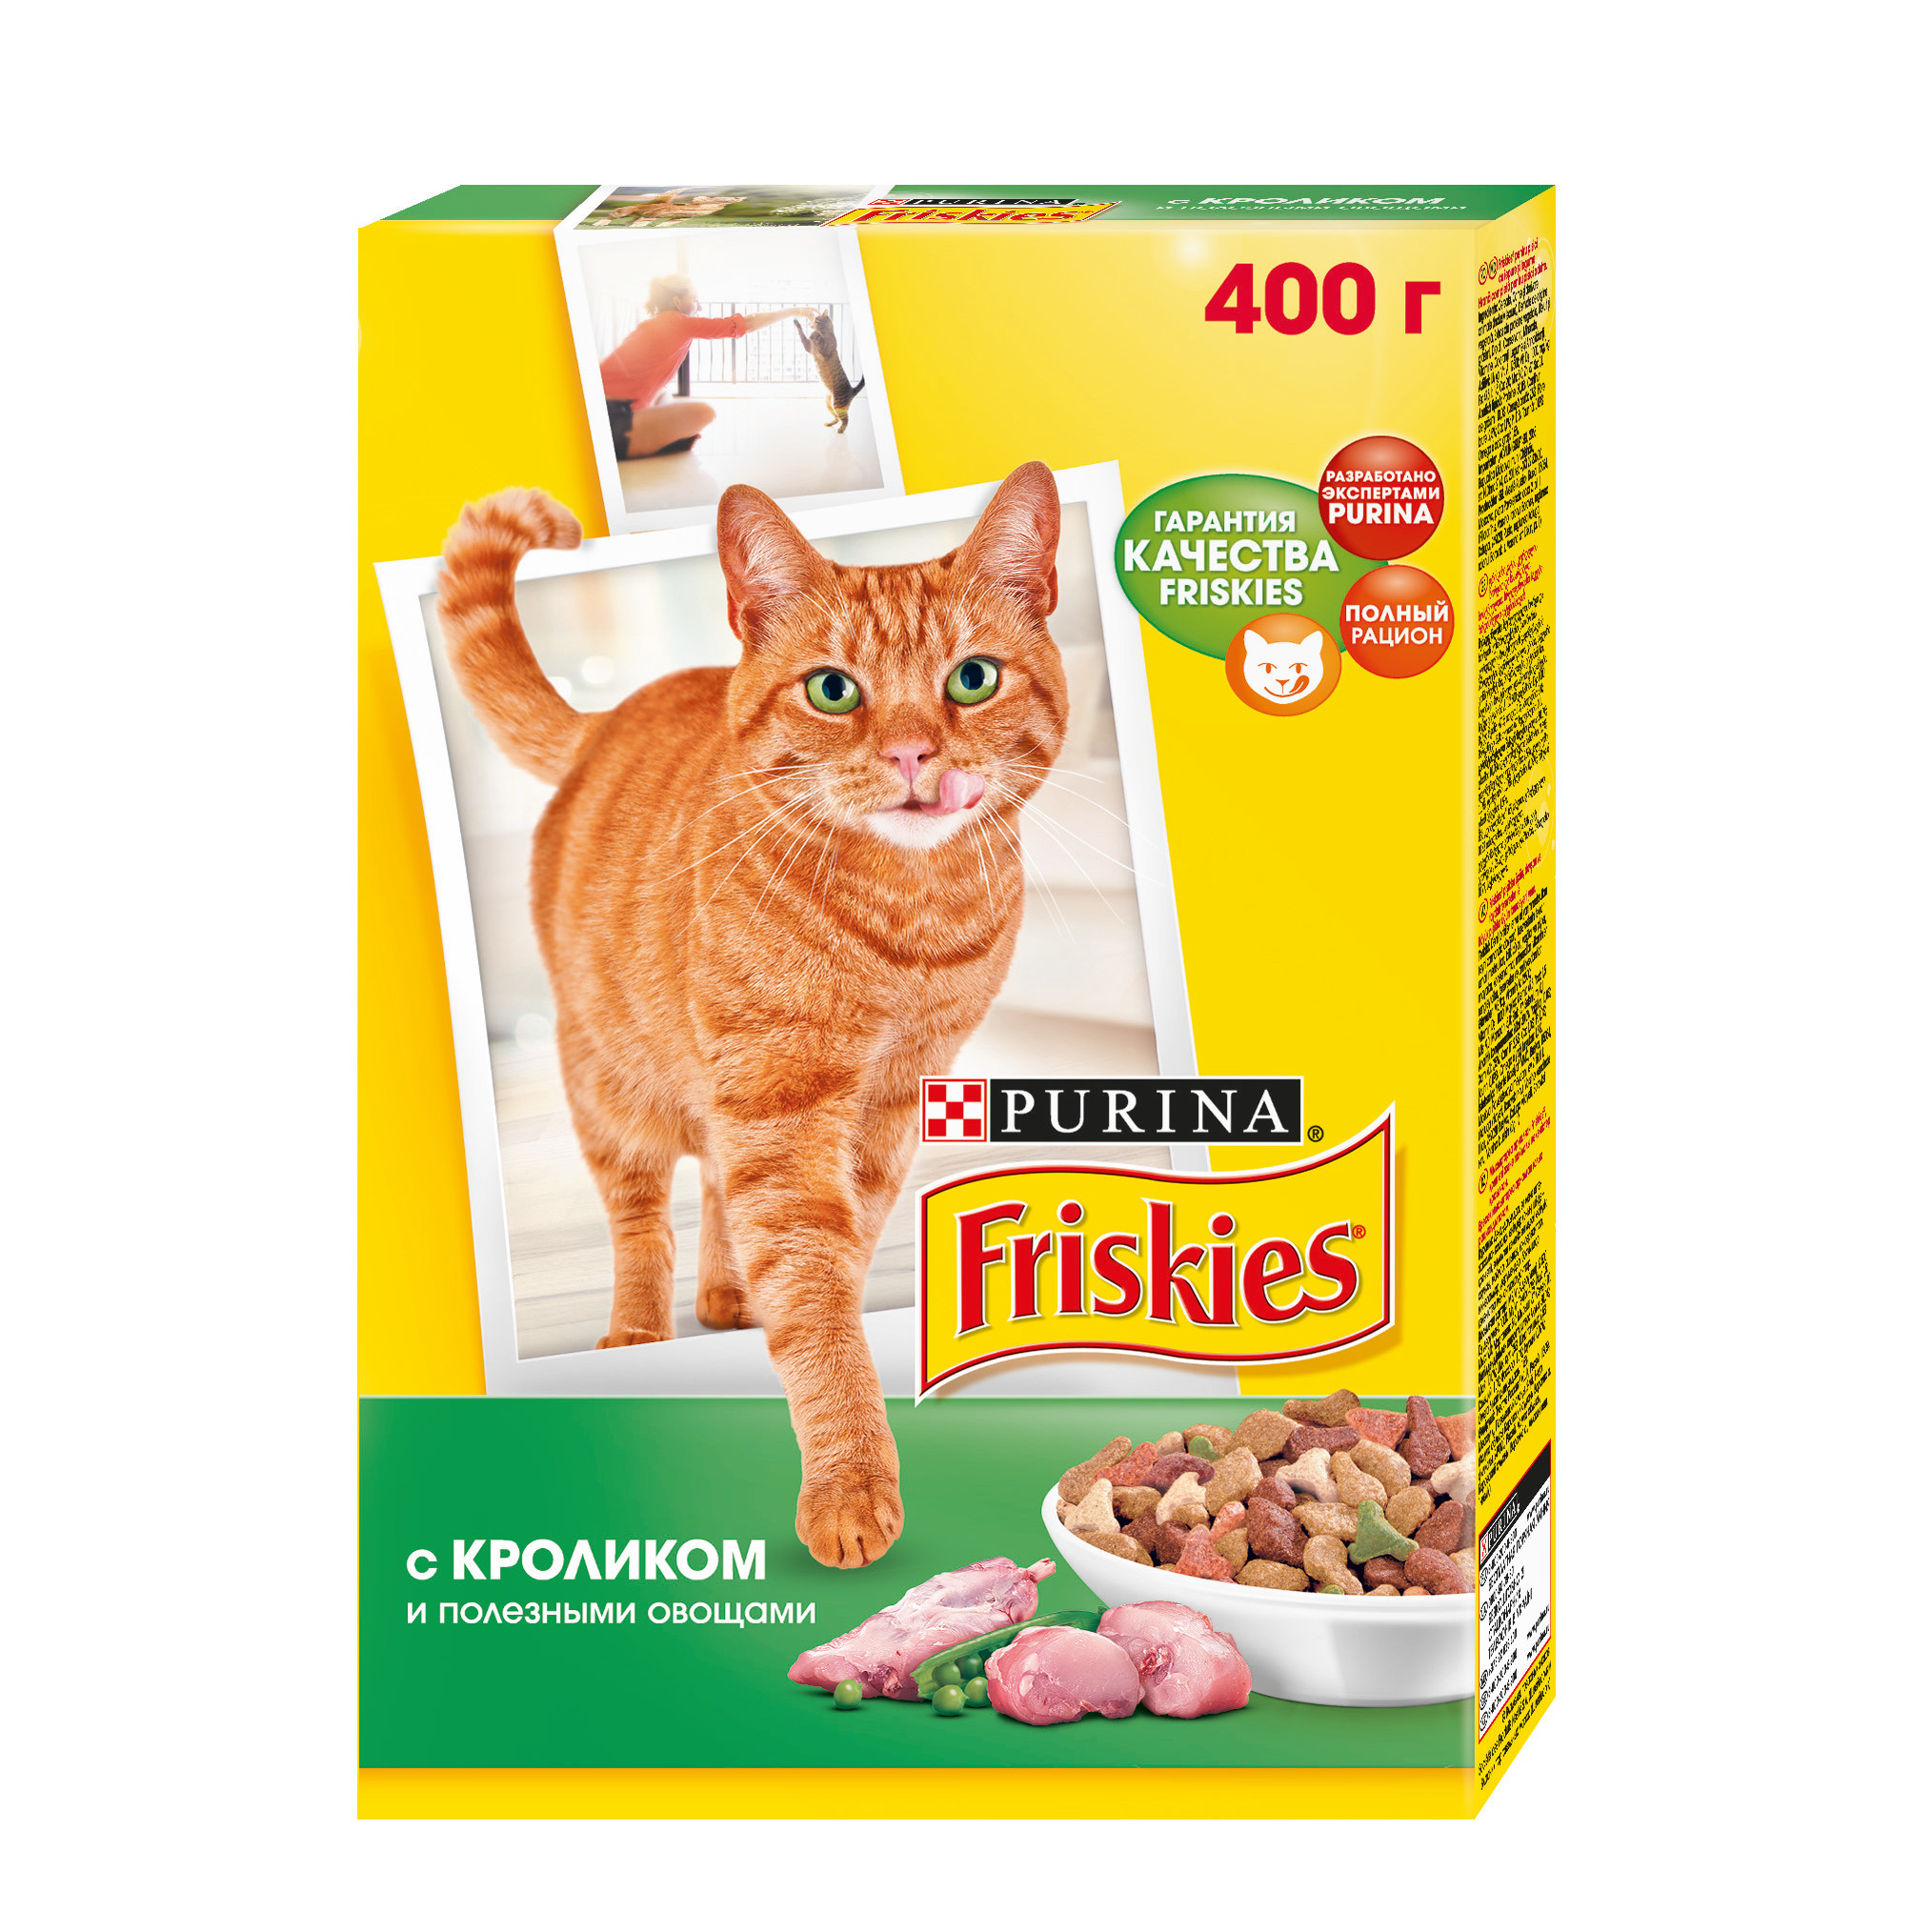 все цены на A set of dry food Friskies for adult cats with a rabbit and healthy vegetables, Cardboard box, 400 gx 10 pcs. онлайн